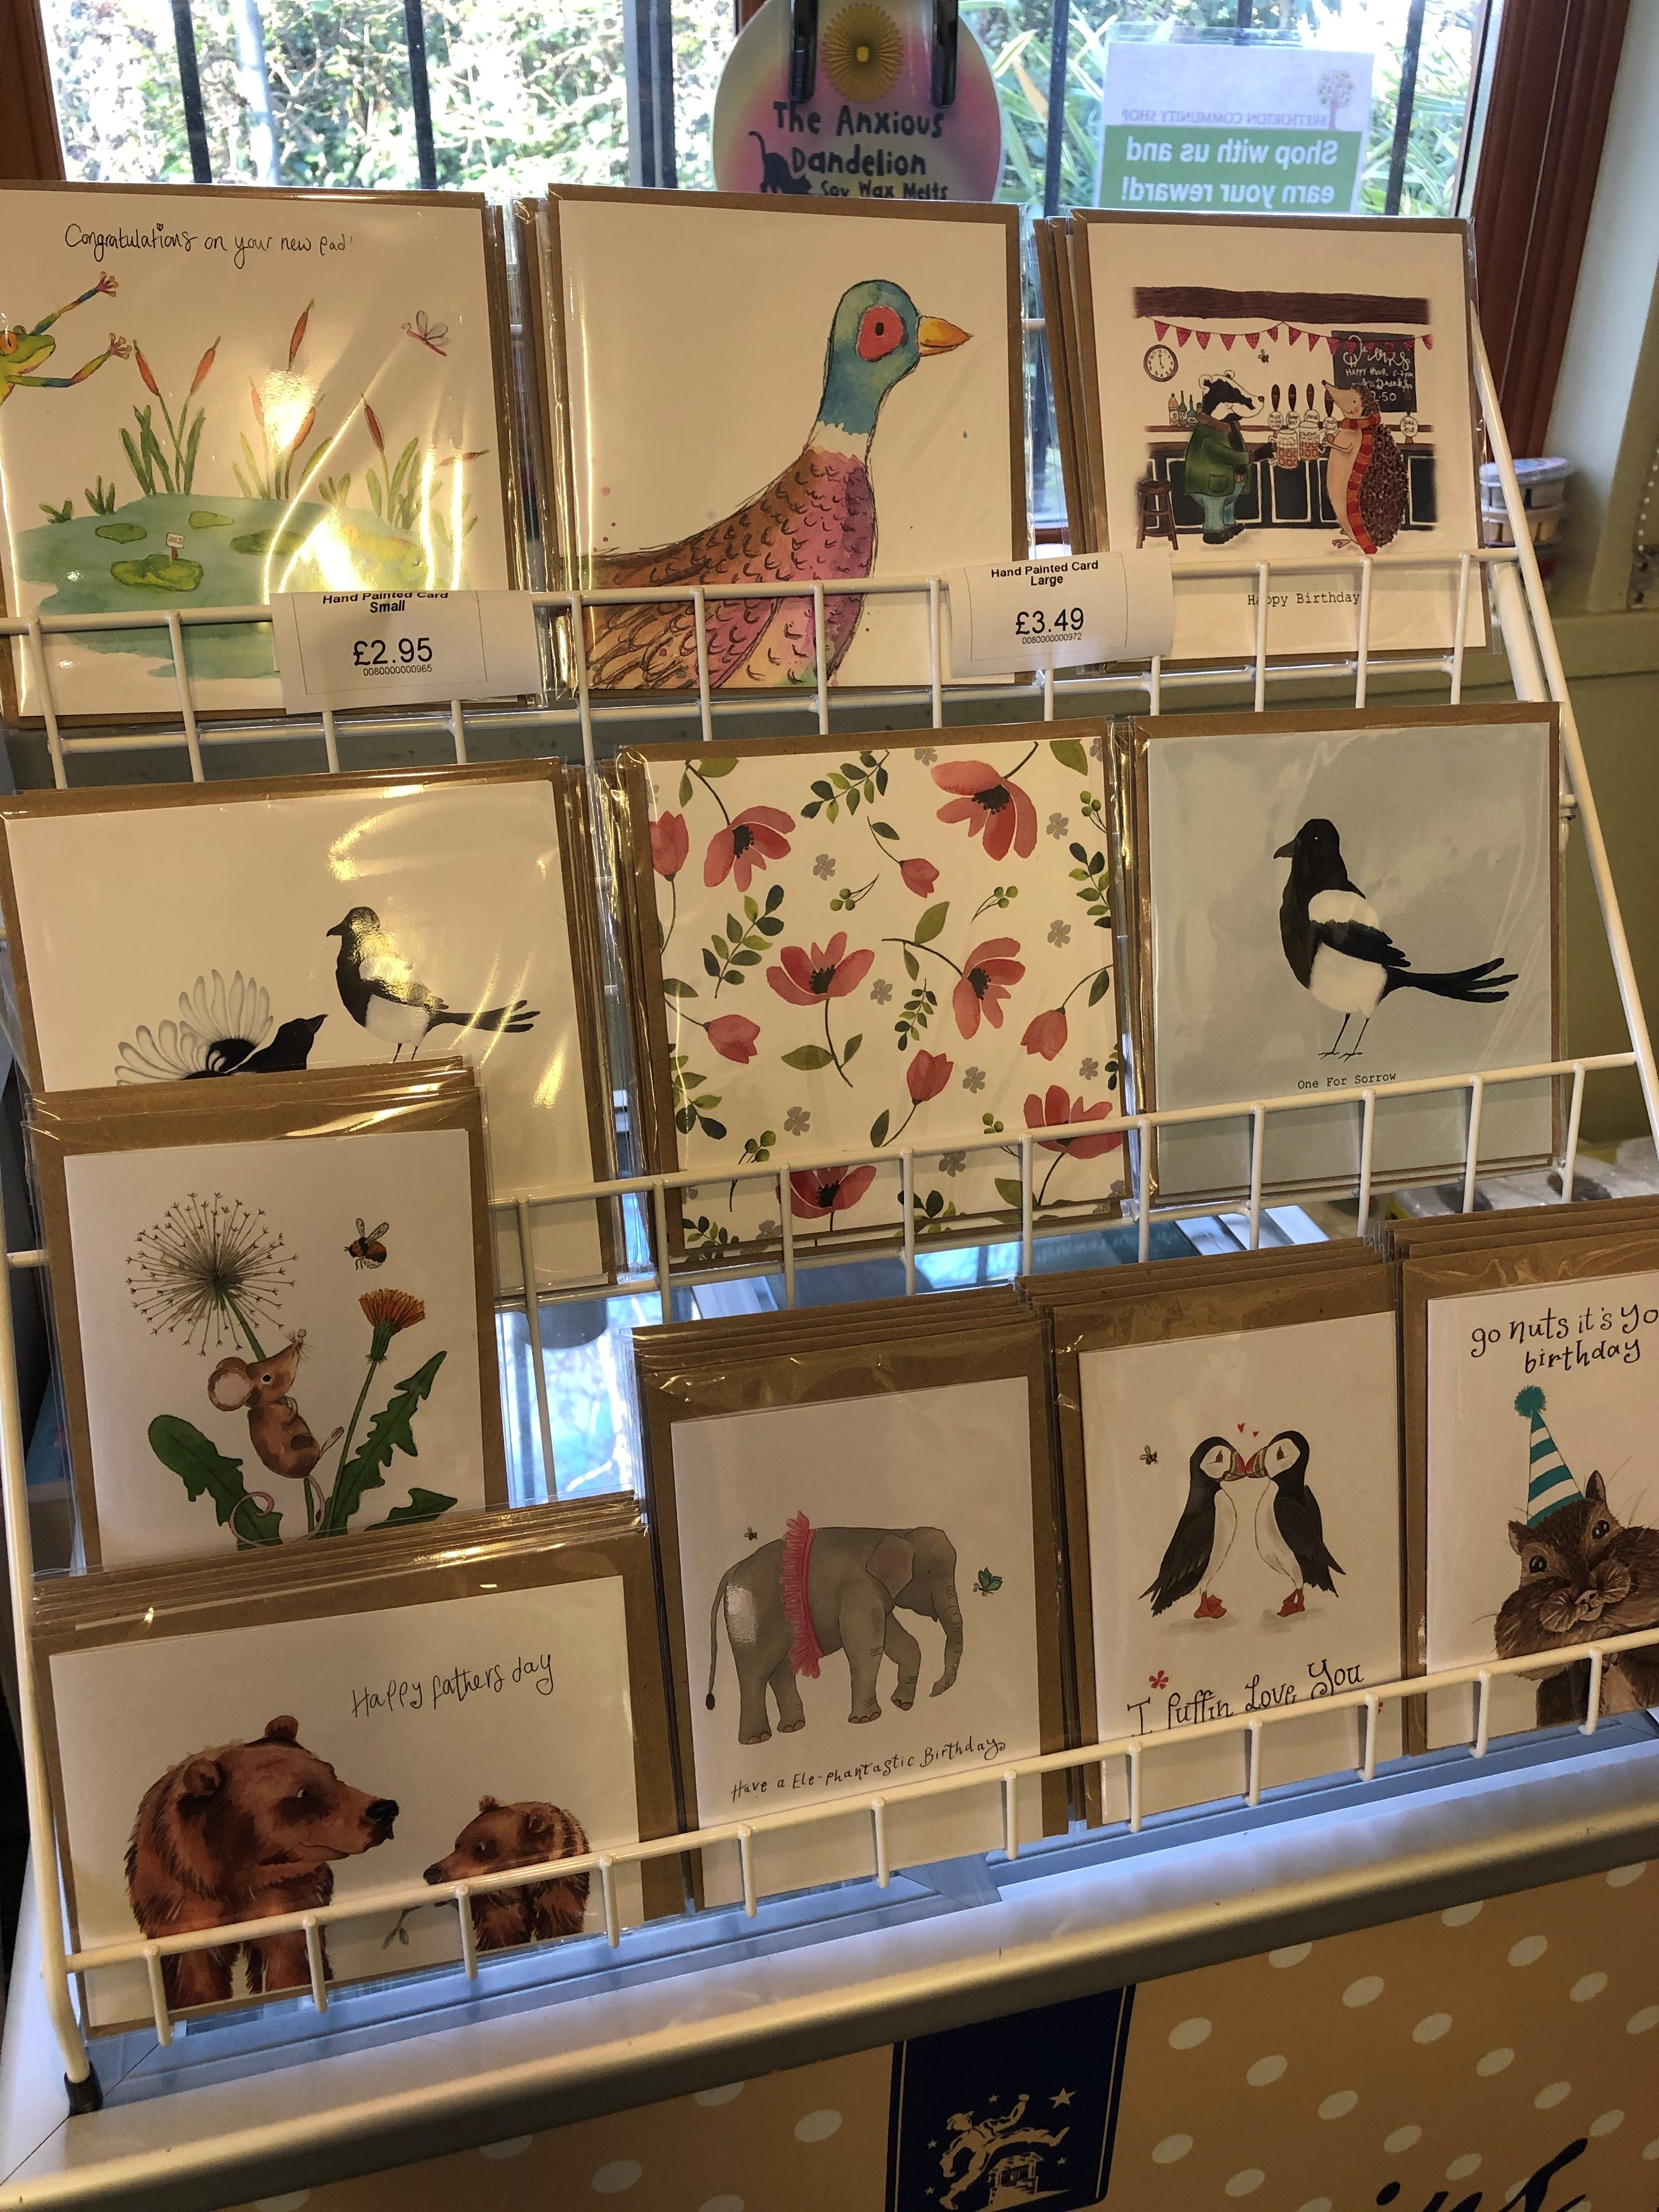 A photo of a rack of greetings cards